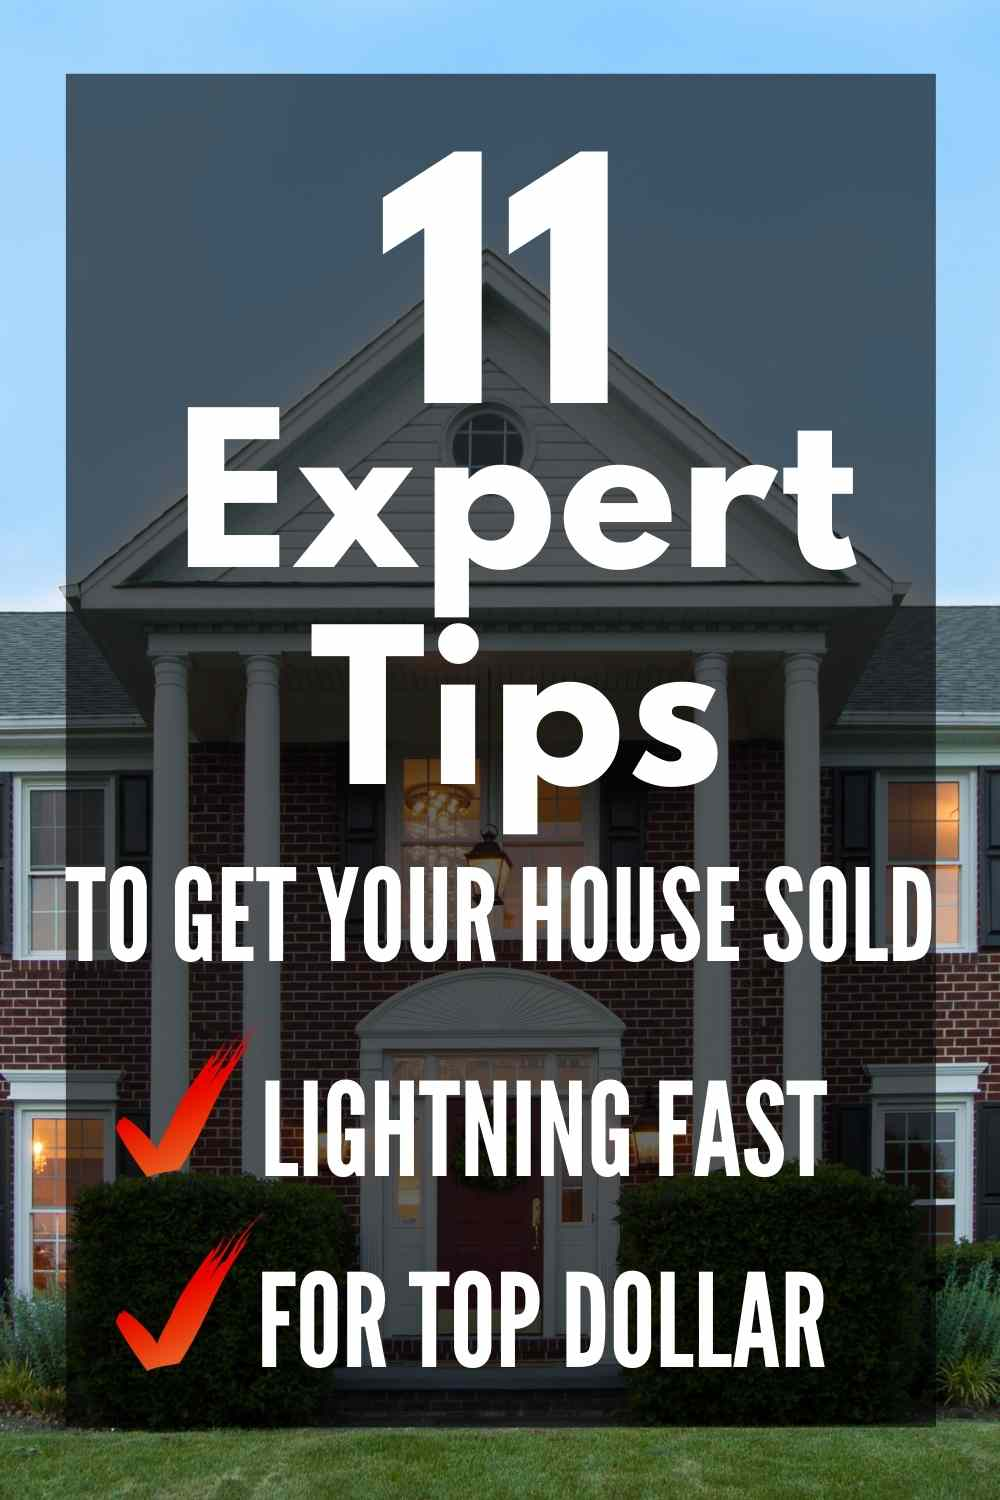 11 Expert Tips to get your house sold lightning fast and for top dollar